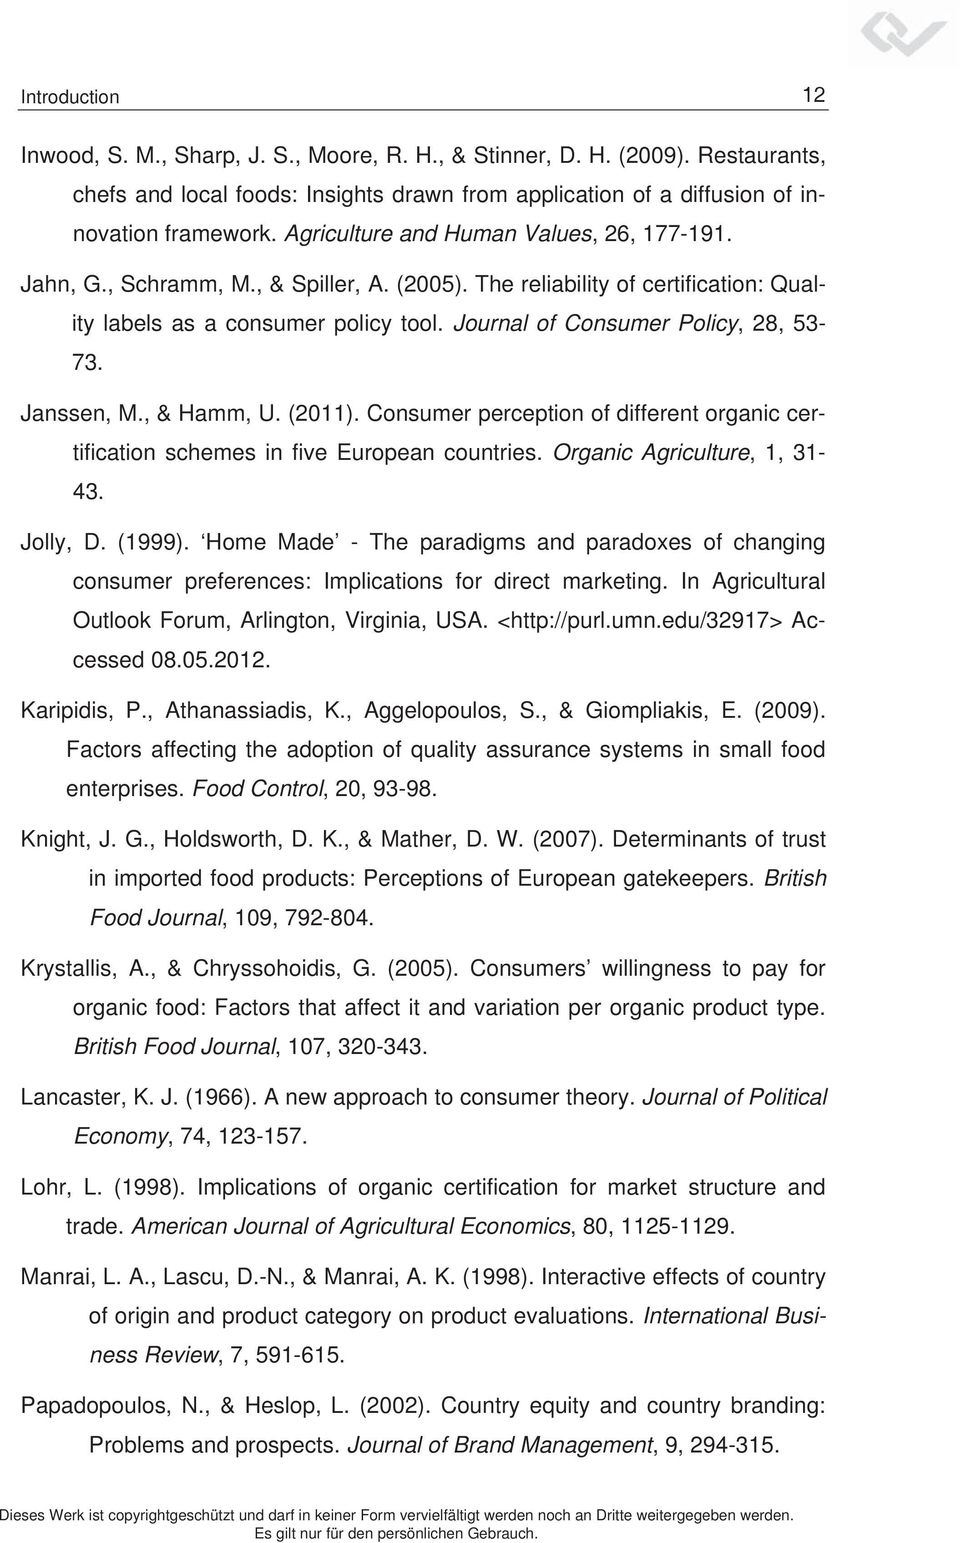 Journal of Consumer Policy, 28, 53-73. Janssen, M., & Hamm, U. (2011). Consumer perception of different organic certification schemes in five European countries. Organic Agriculture, 1, 31-43.